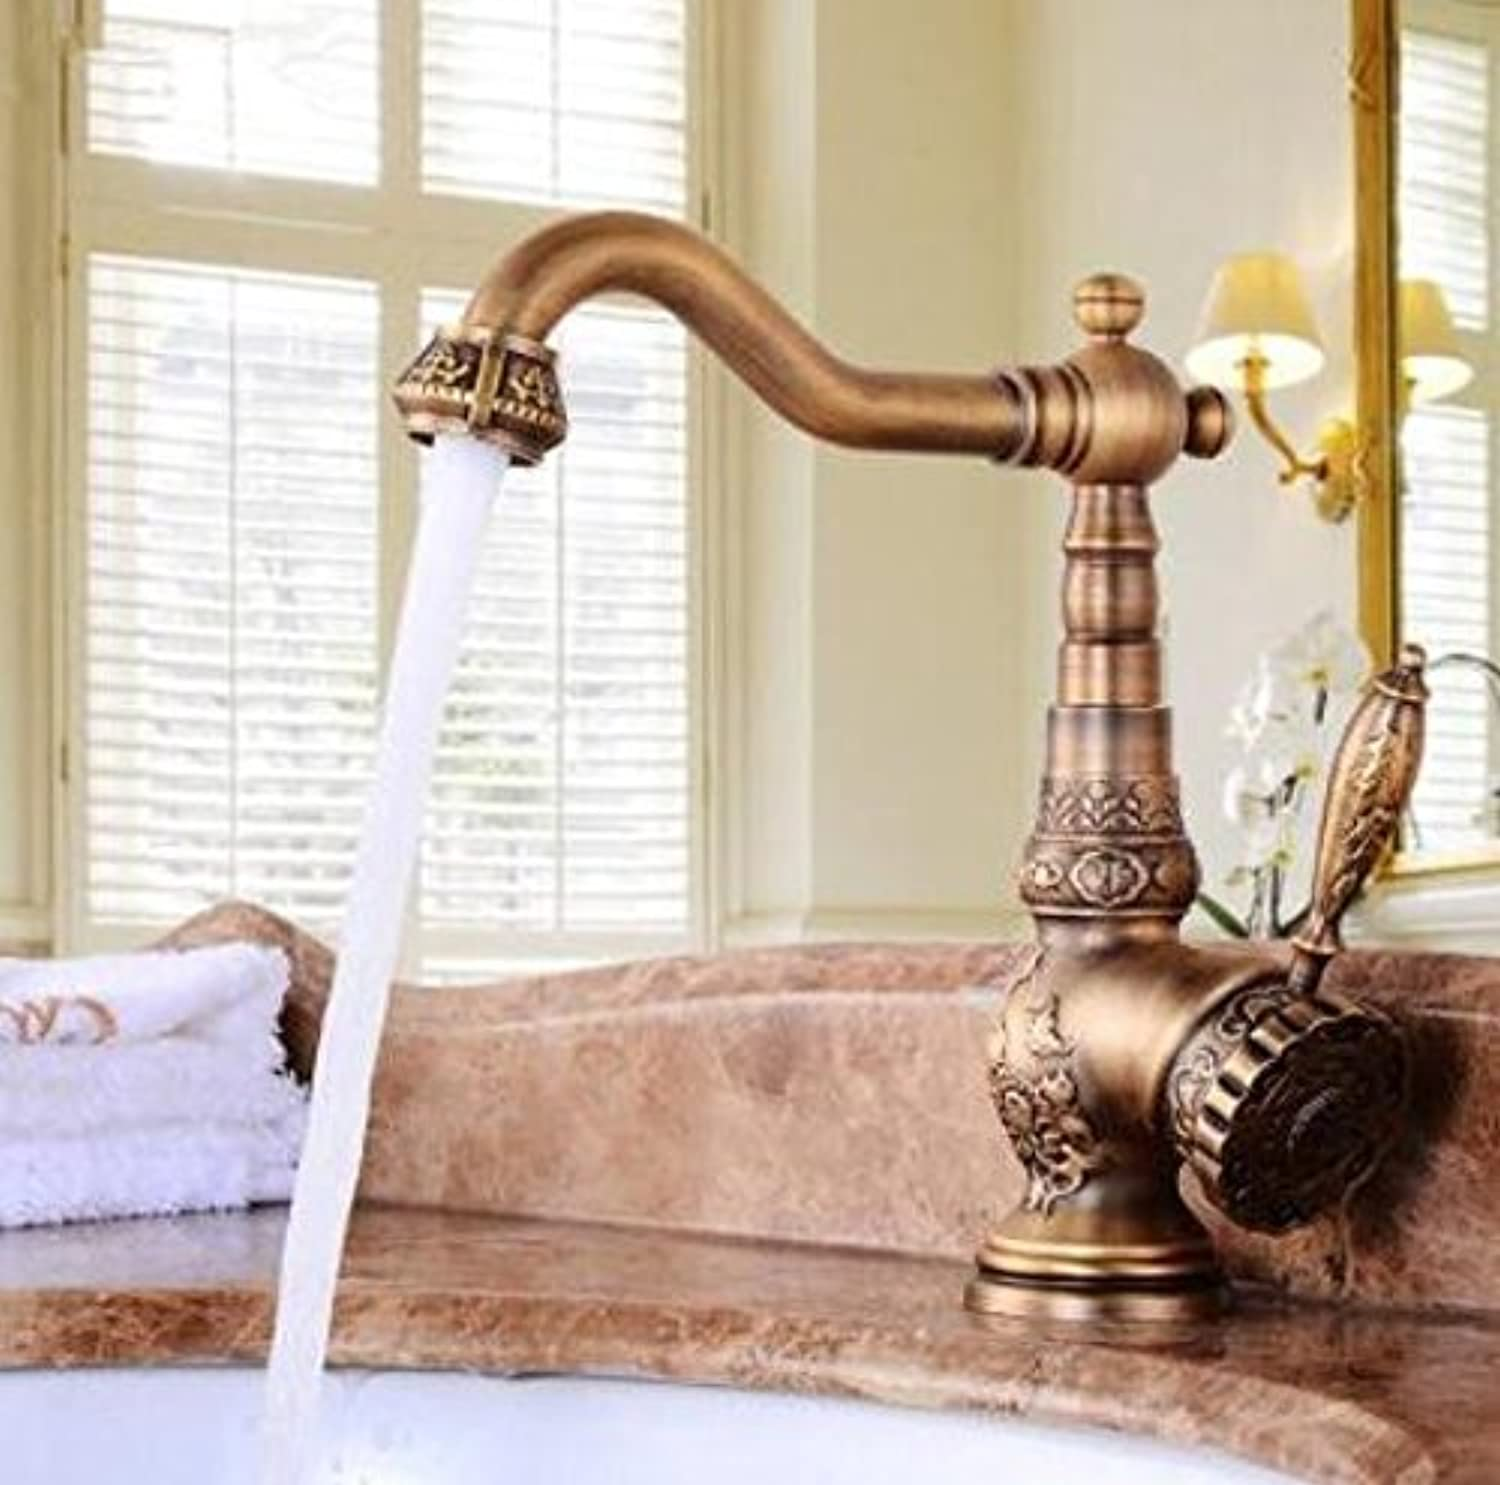 Decorry Brass Kitchen Basin Faucet Antique Faucet Retro Carved Basin Faucet redating Single Handle Single Hole Hot and Cold Water Xt944,B